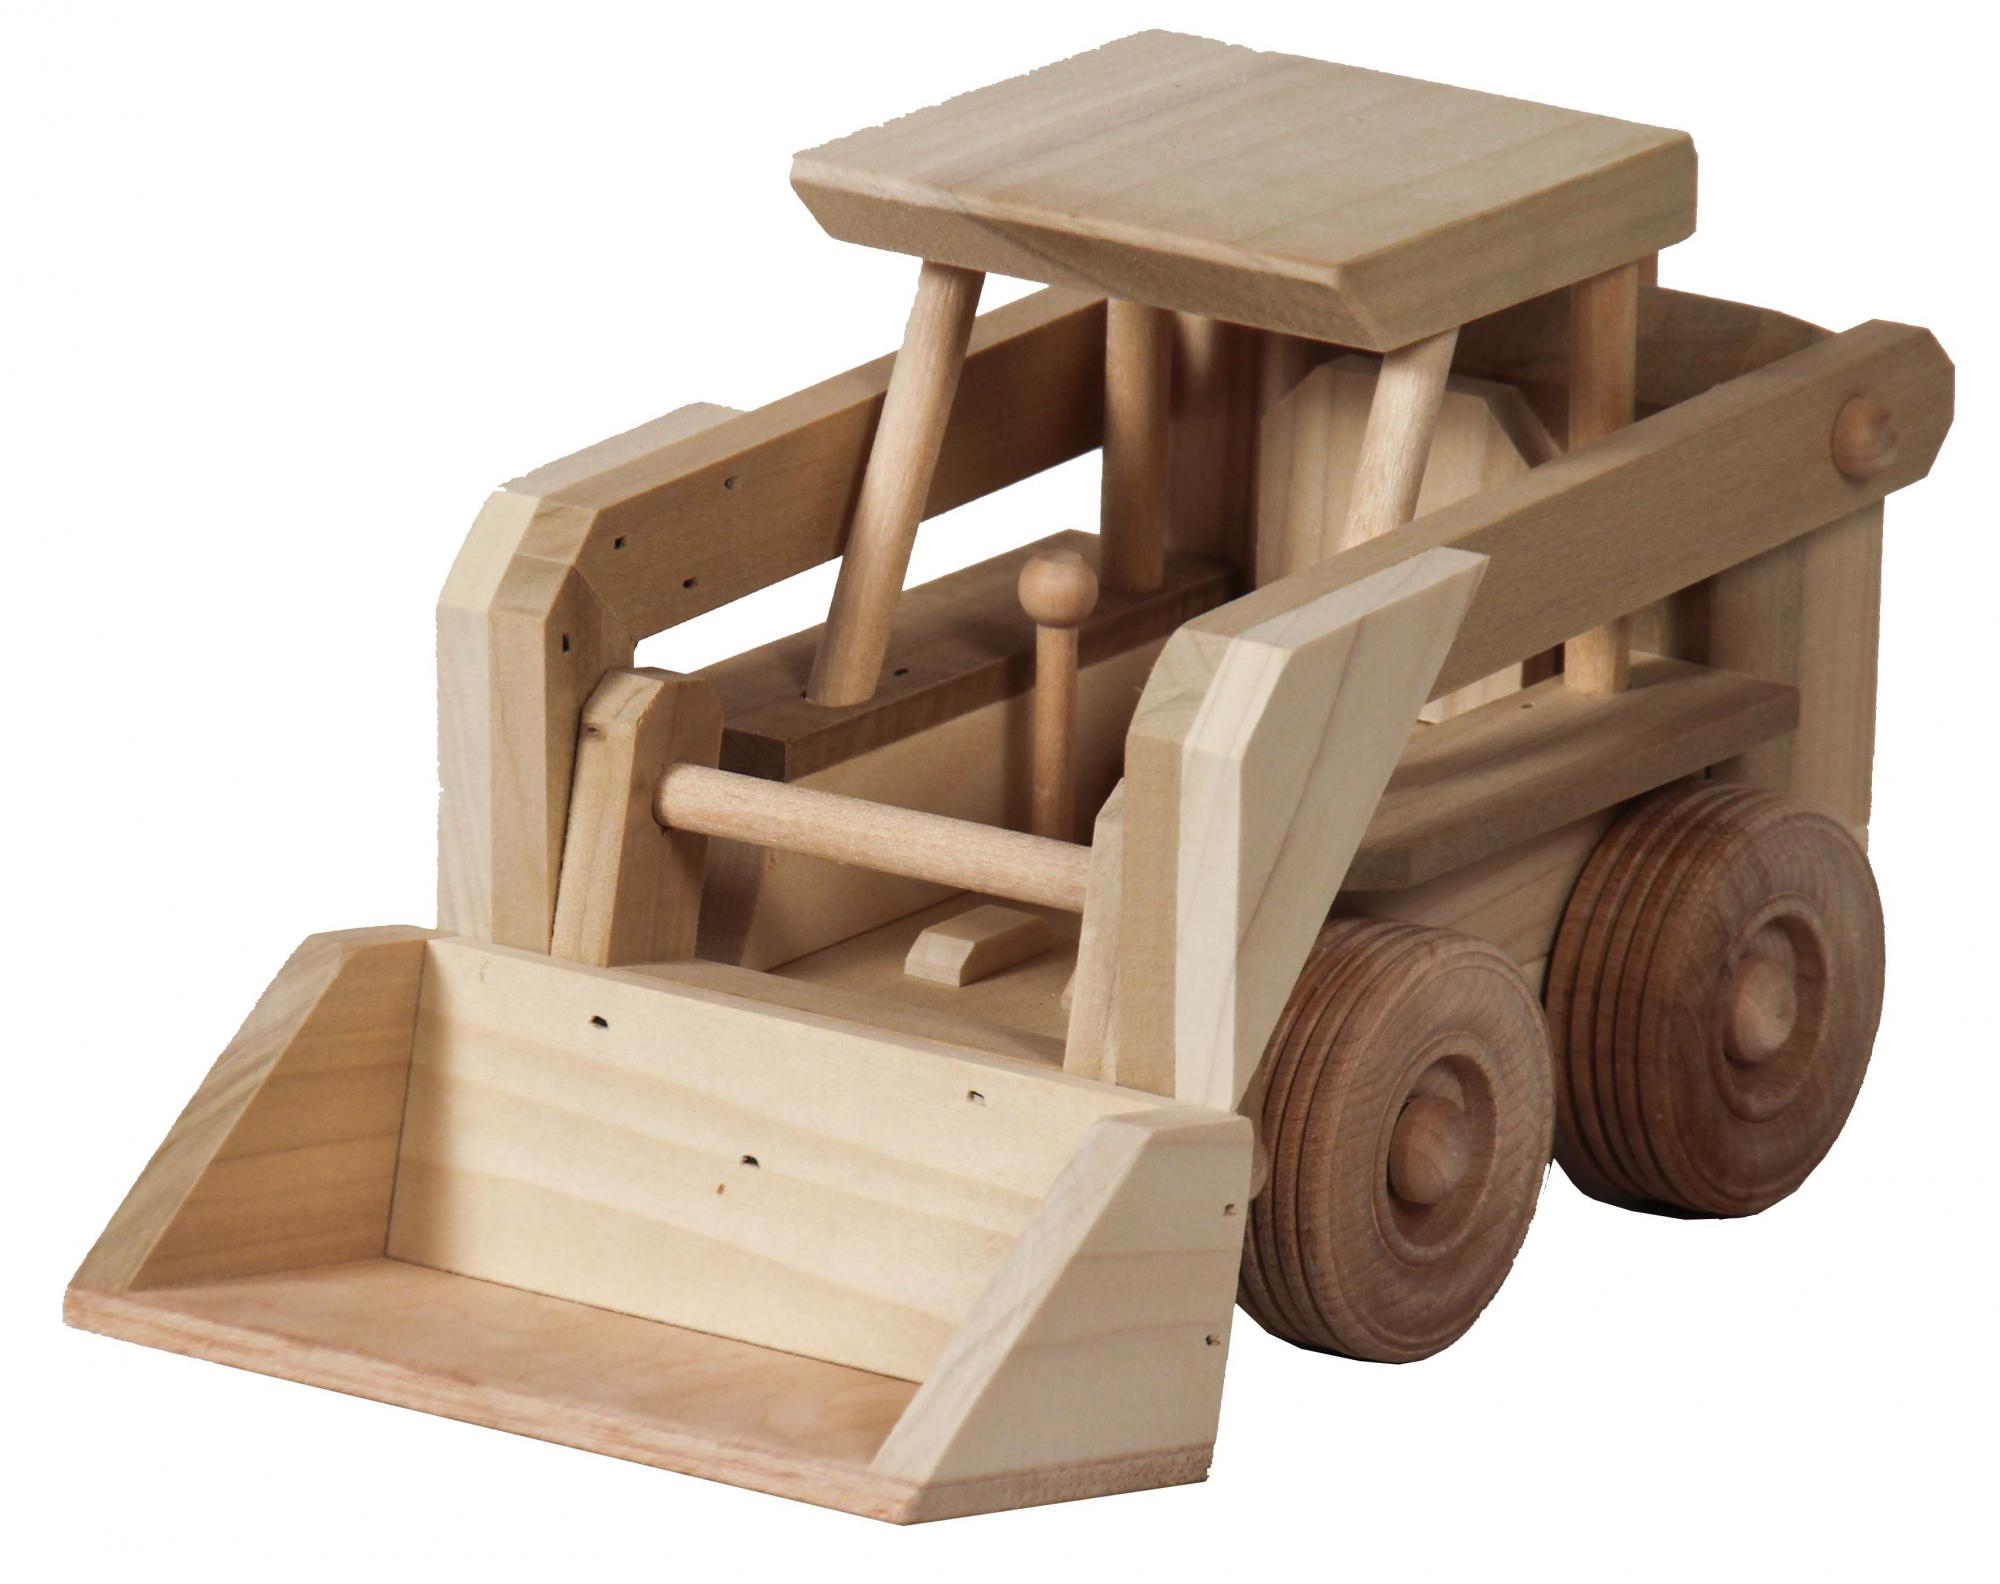 Amish Wooden Rocking Horse Plans